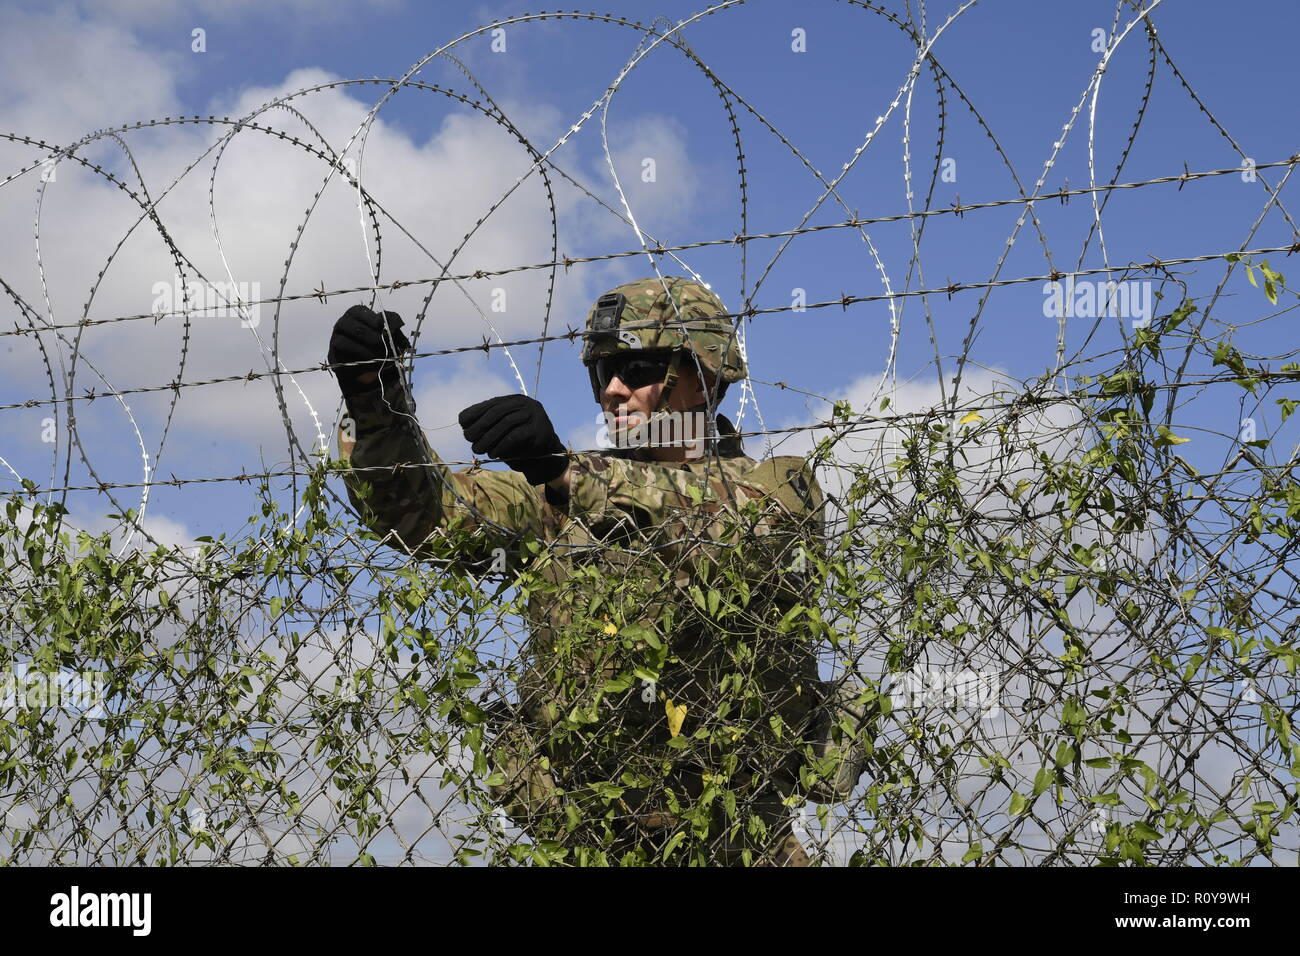 U.S. Army soldiers from the 541st Sapper Company, install concertina wire along the Mexico border at Donna Rio Bravo International Bridge November 6, 2018 Donna, Texas. The troops are deploying to the U.S. - Mexico border by order of President Donald Trump to intercept the Honduran migrant caravan. Stock Photo